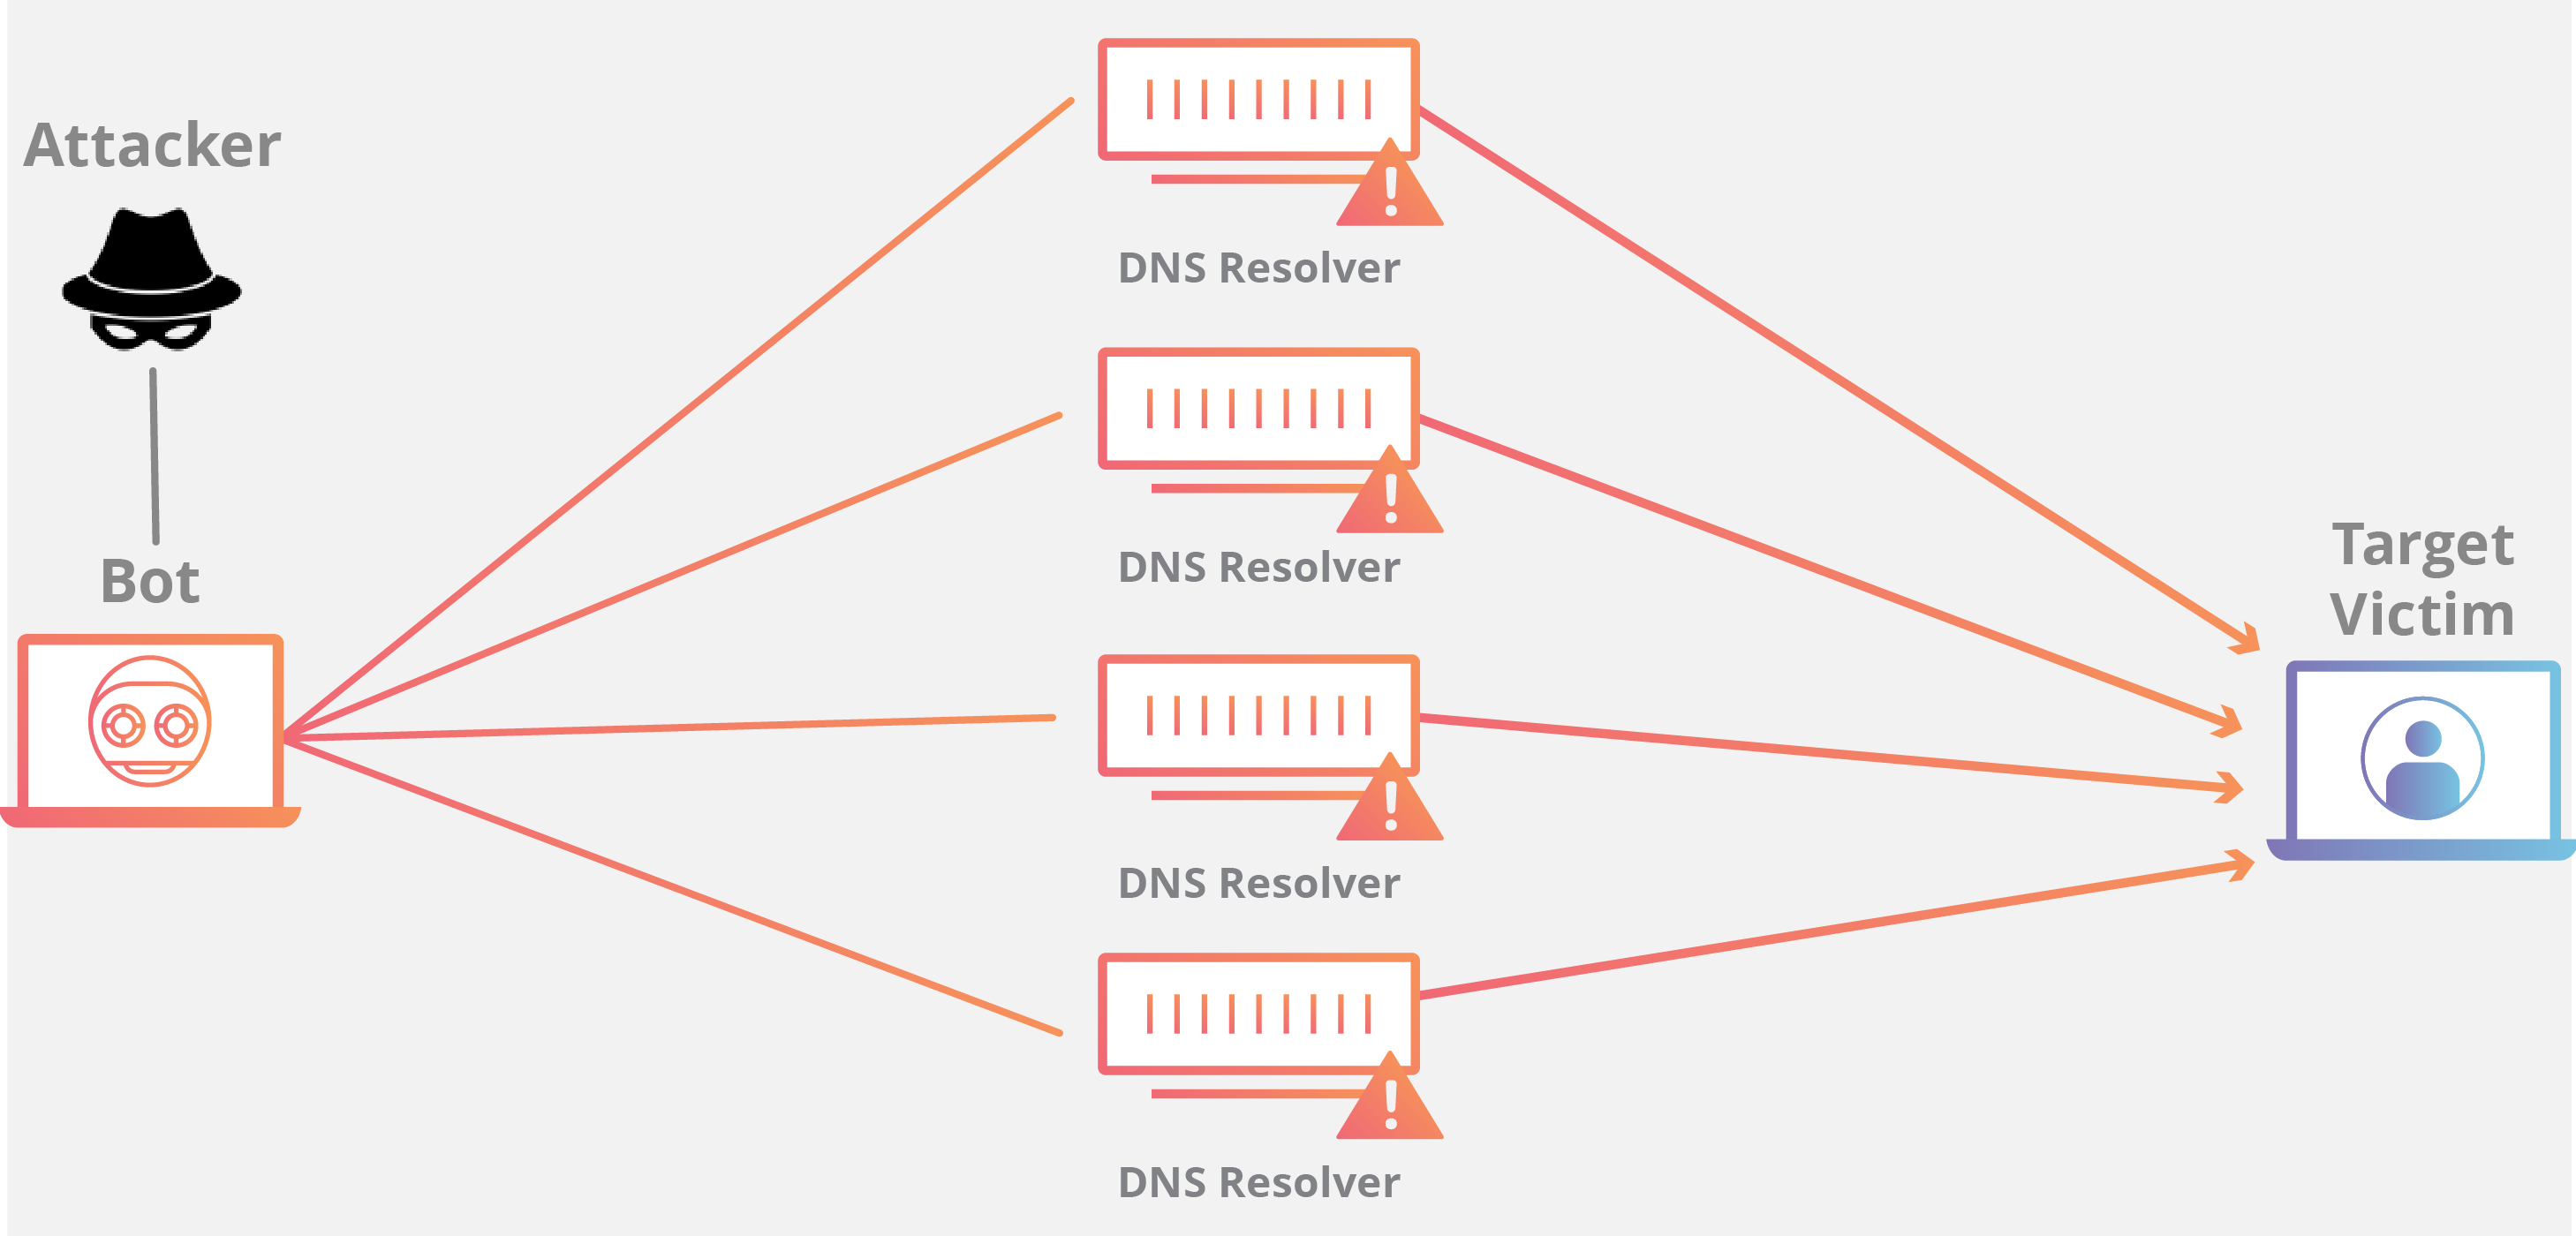 NTP Amplification DDoS Attack